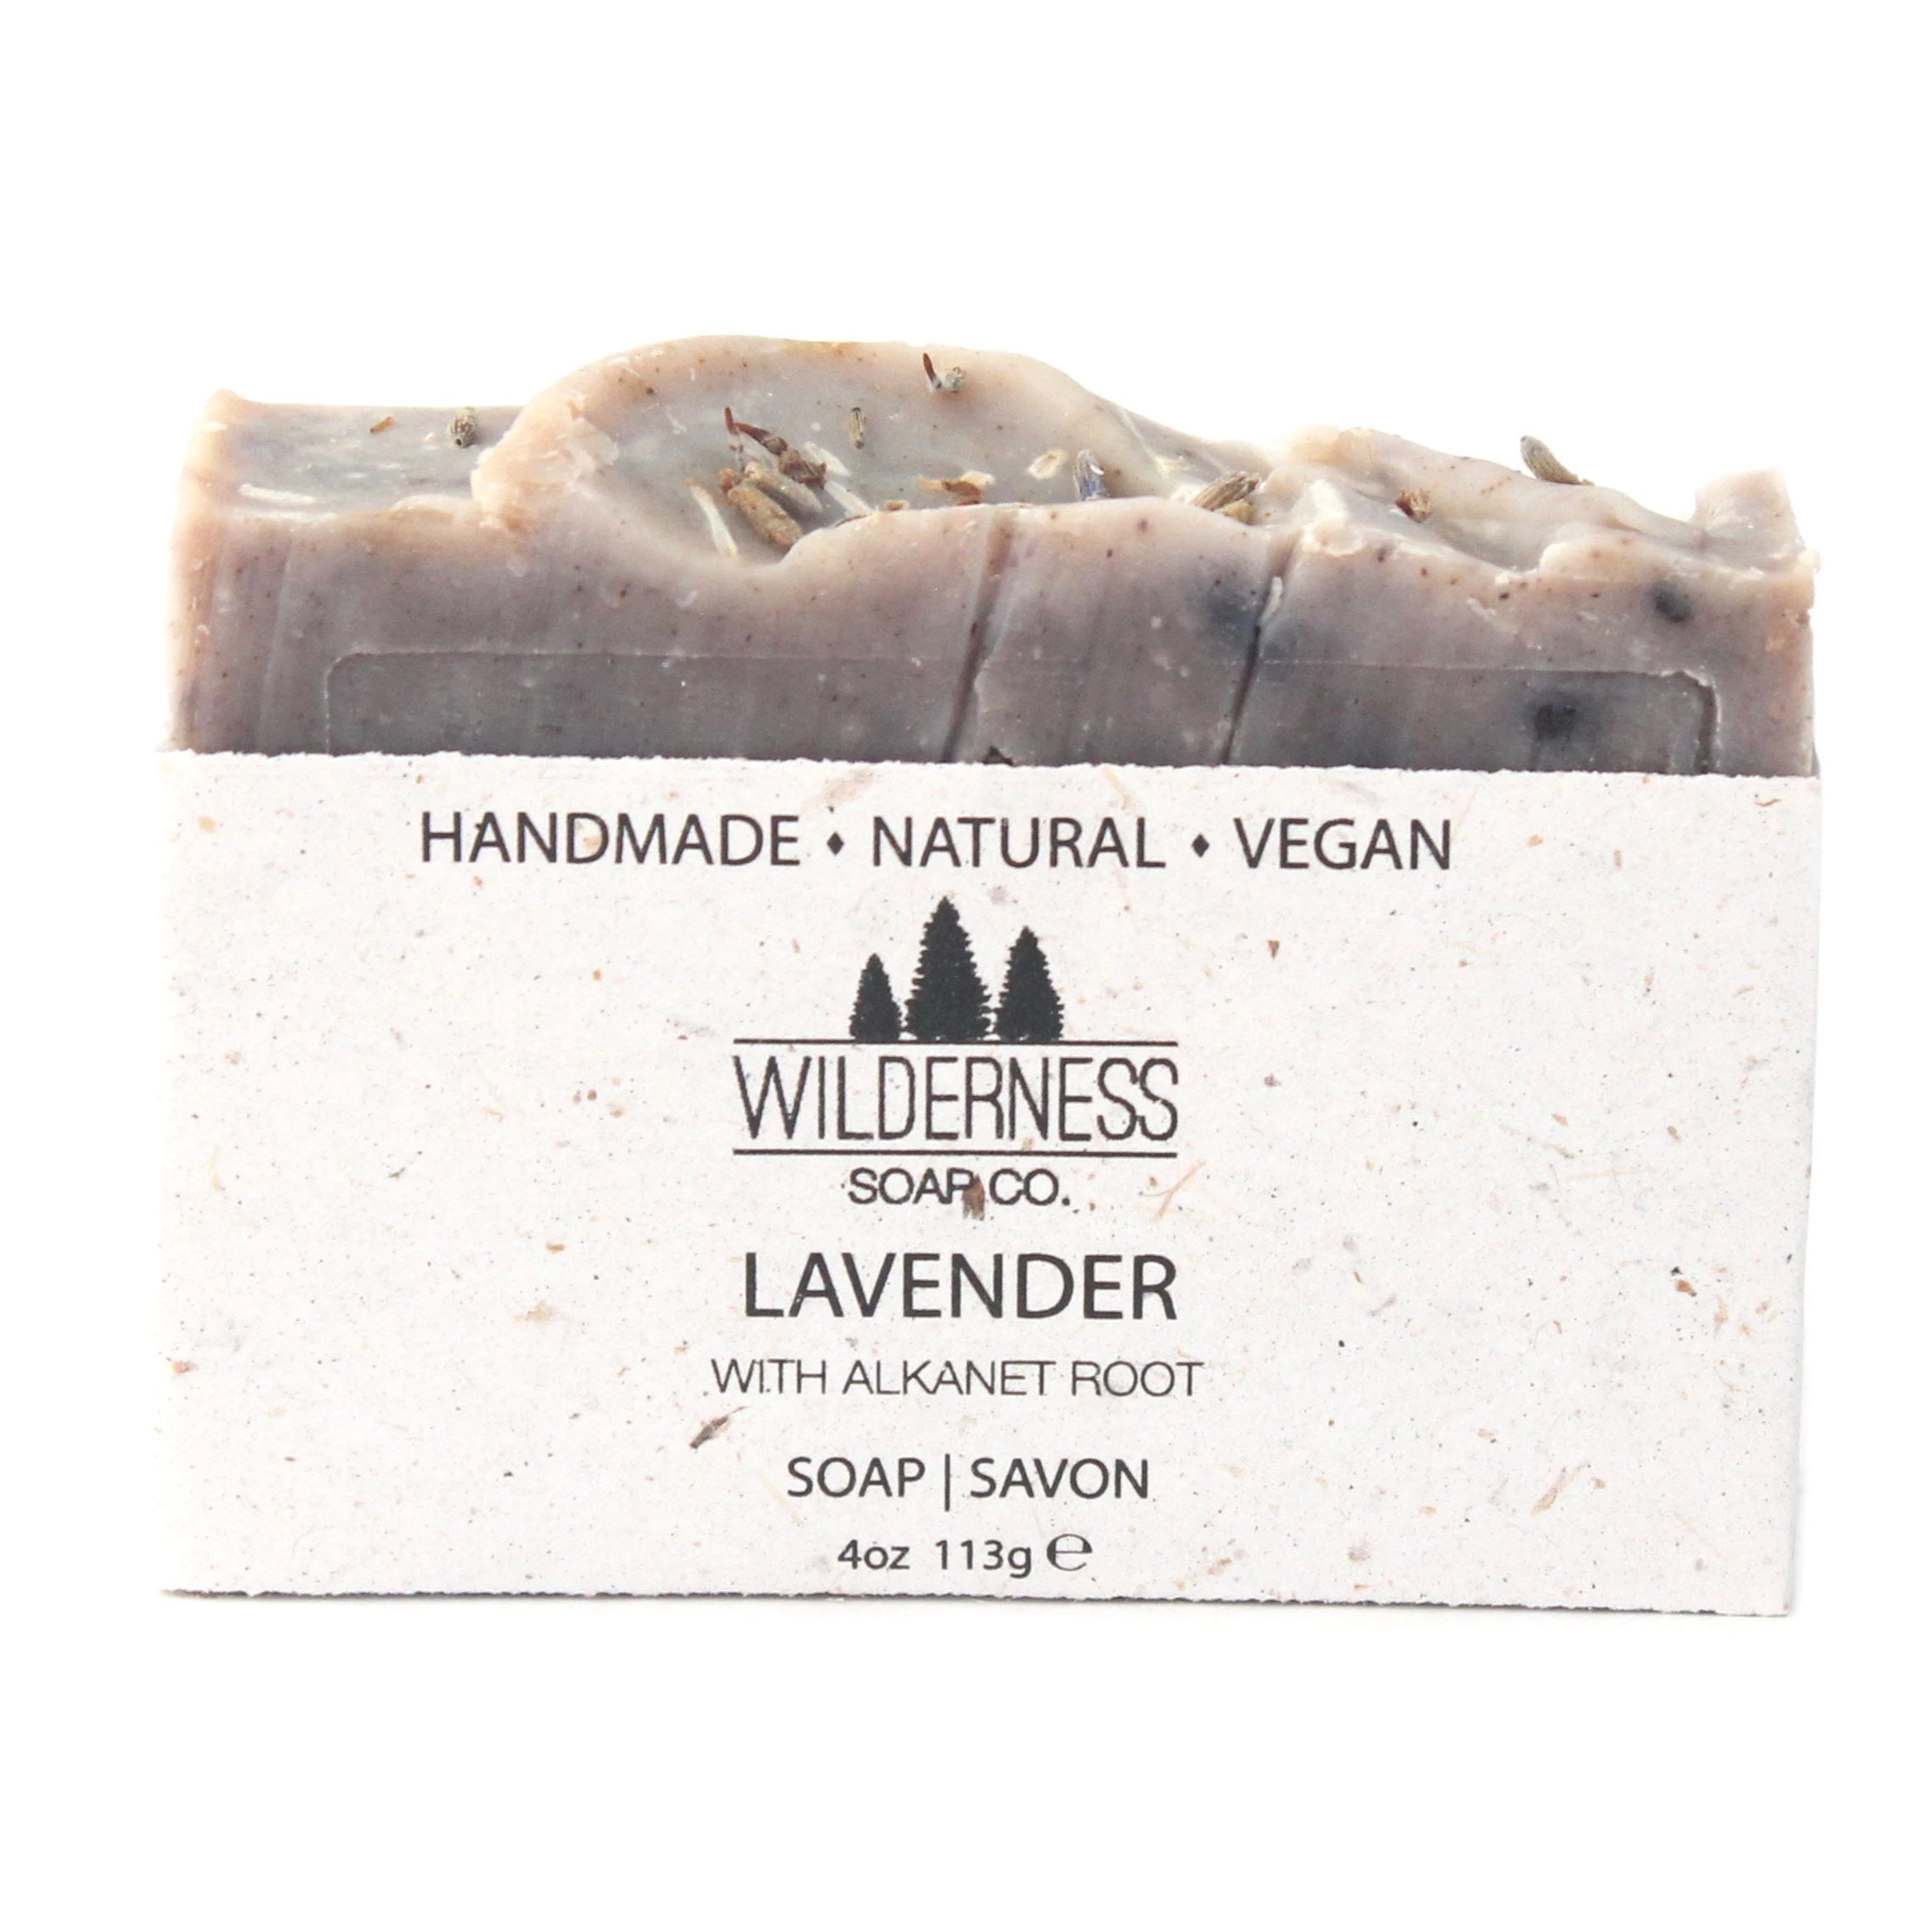 Made in Canada natural vegan handmade soap, scented with Lavender buds and Alkanet Root.